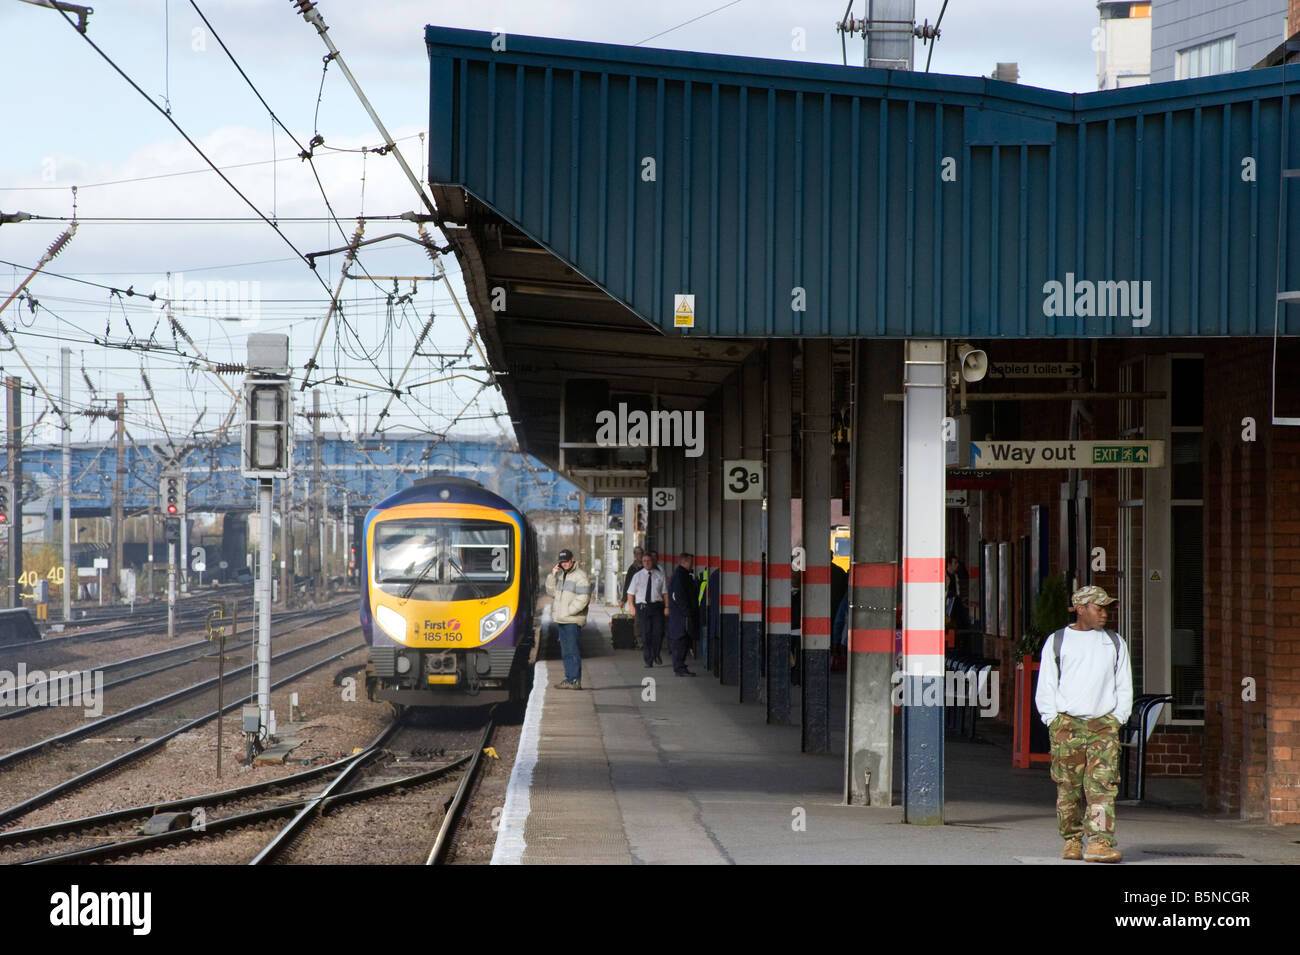 Platform at Doncaster railway station 'South Yorkshire' England 'Great Britain' 'United Kingdom' - Stock Image